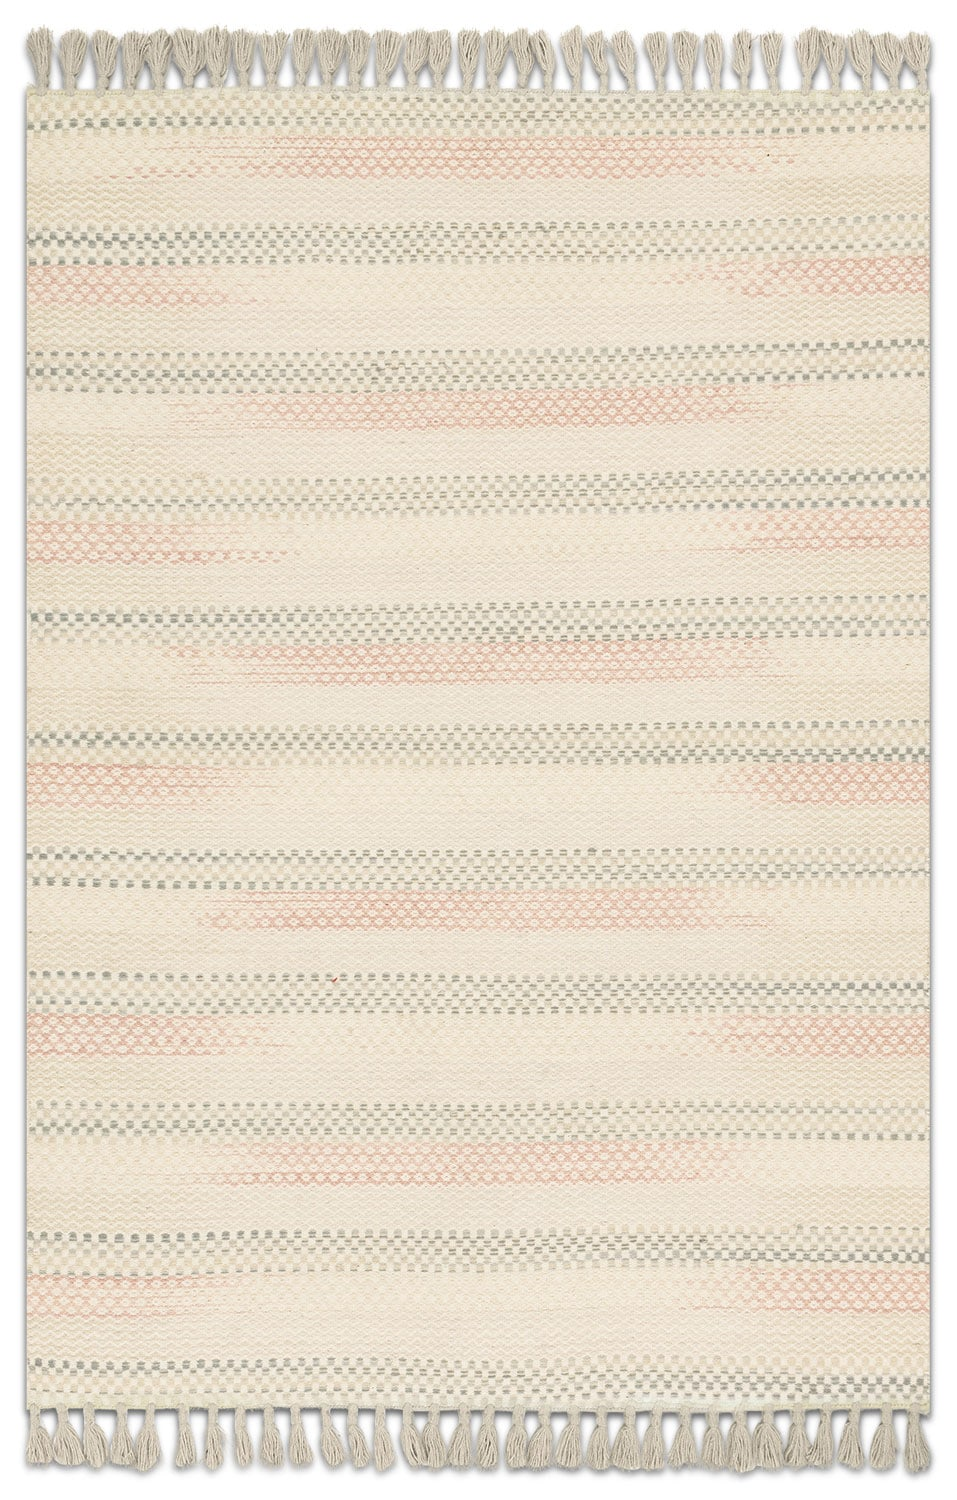 Rugs - Chantilly 8' x 10' Rug - Multi Ivory